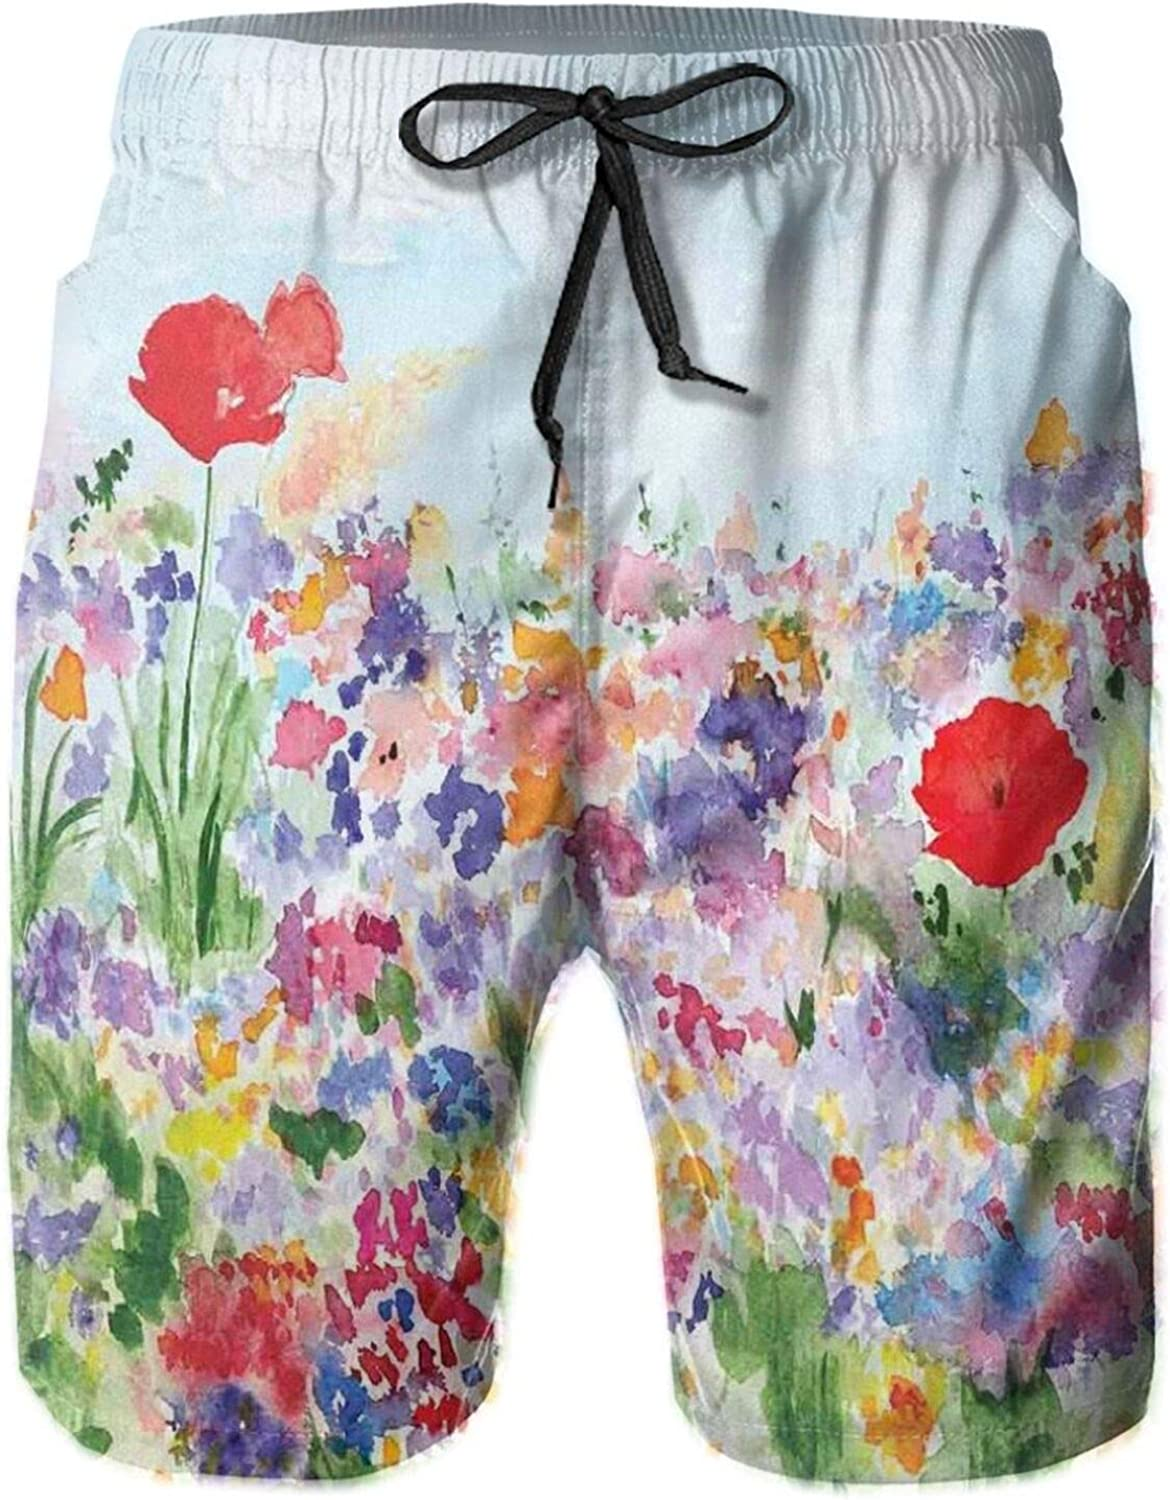 Floral Summertime Garden with Grass and Blooms Love Illustration Print Drawstring Waist Beach Shorts for Men Swim Trucks Board Shorts with Mesh Lining,L